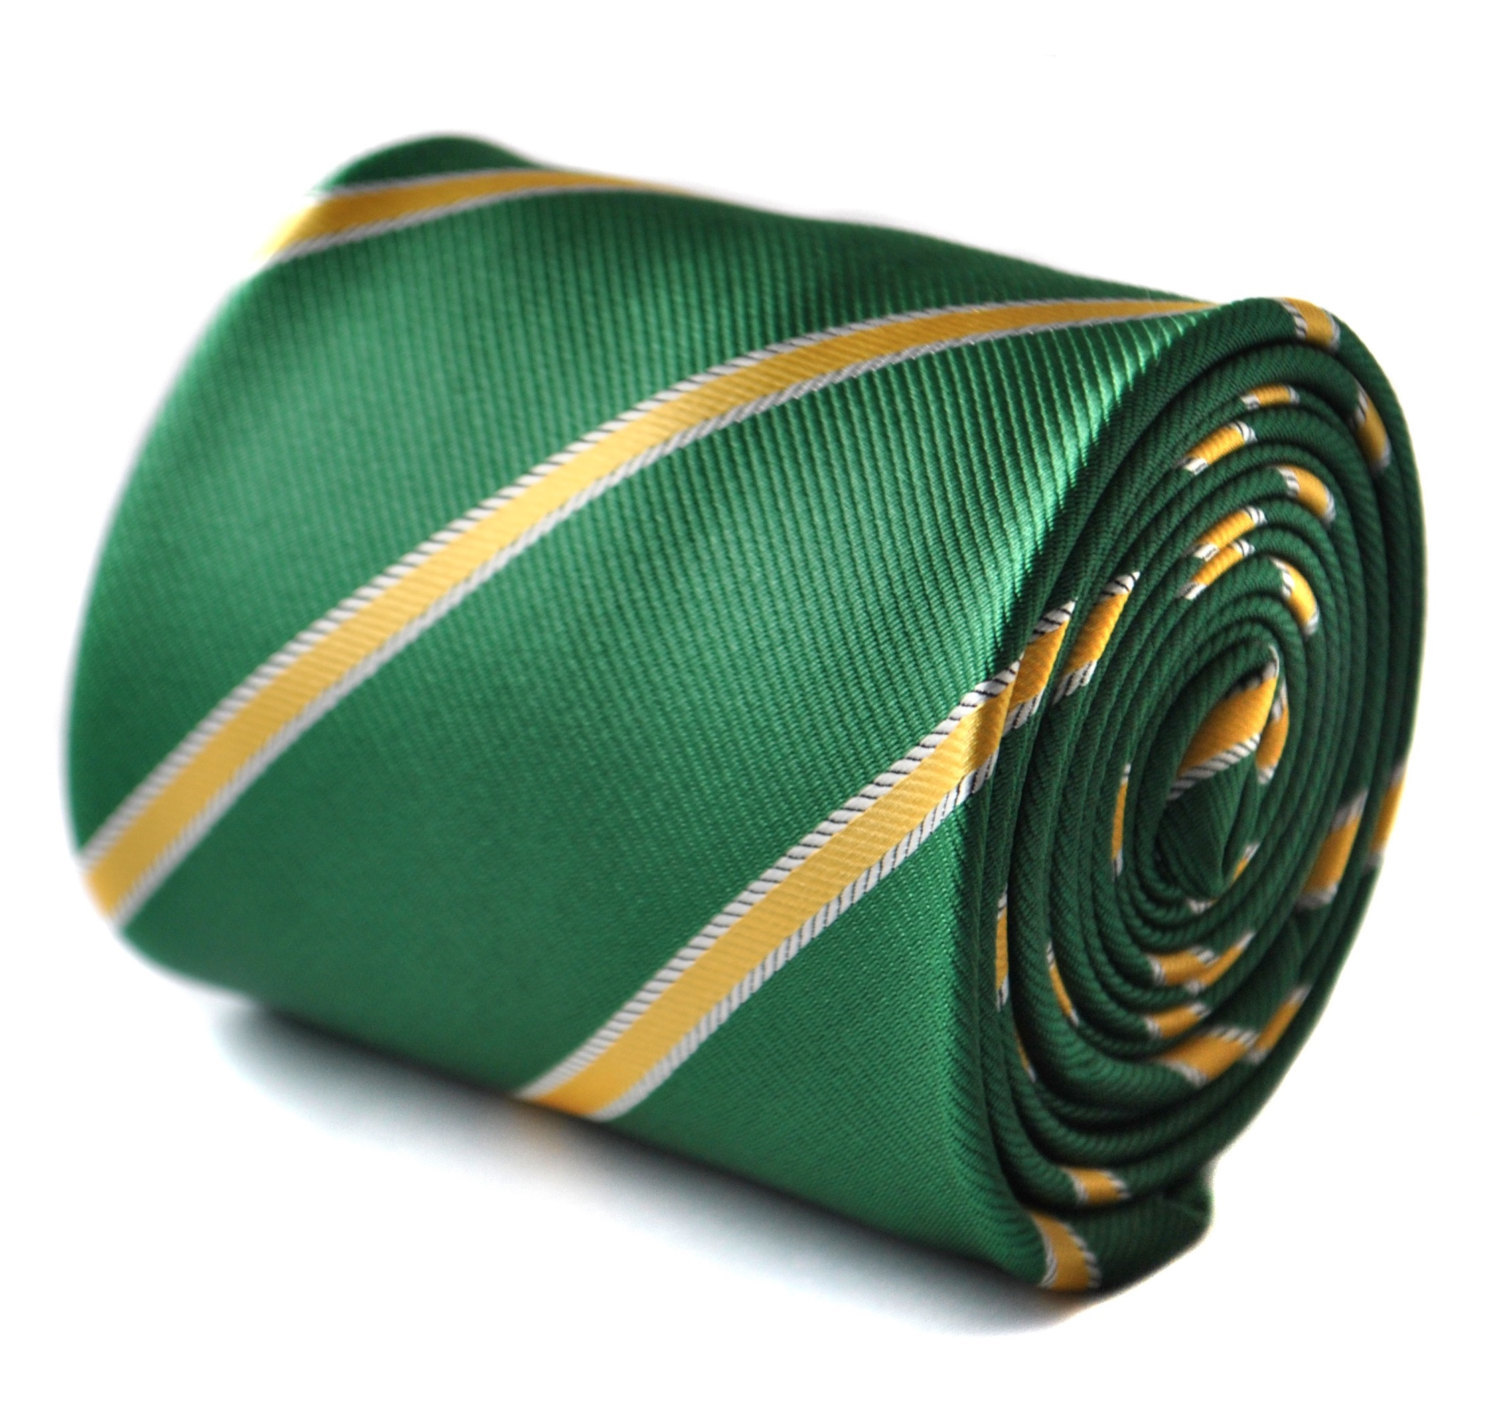 Green and yellow club stripe tie with signature floral design to the rear by Fre